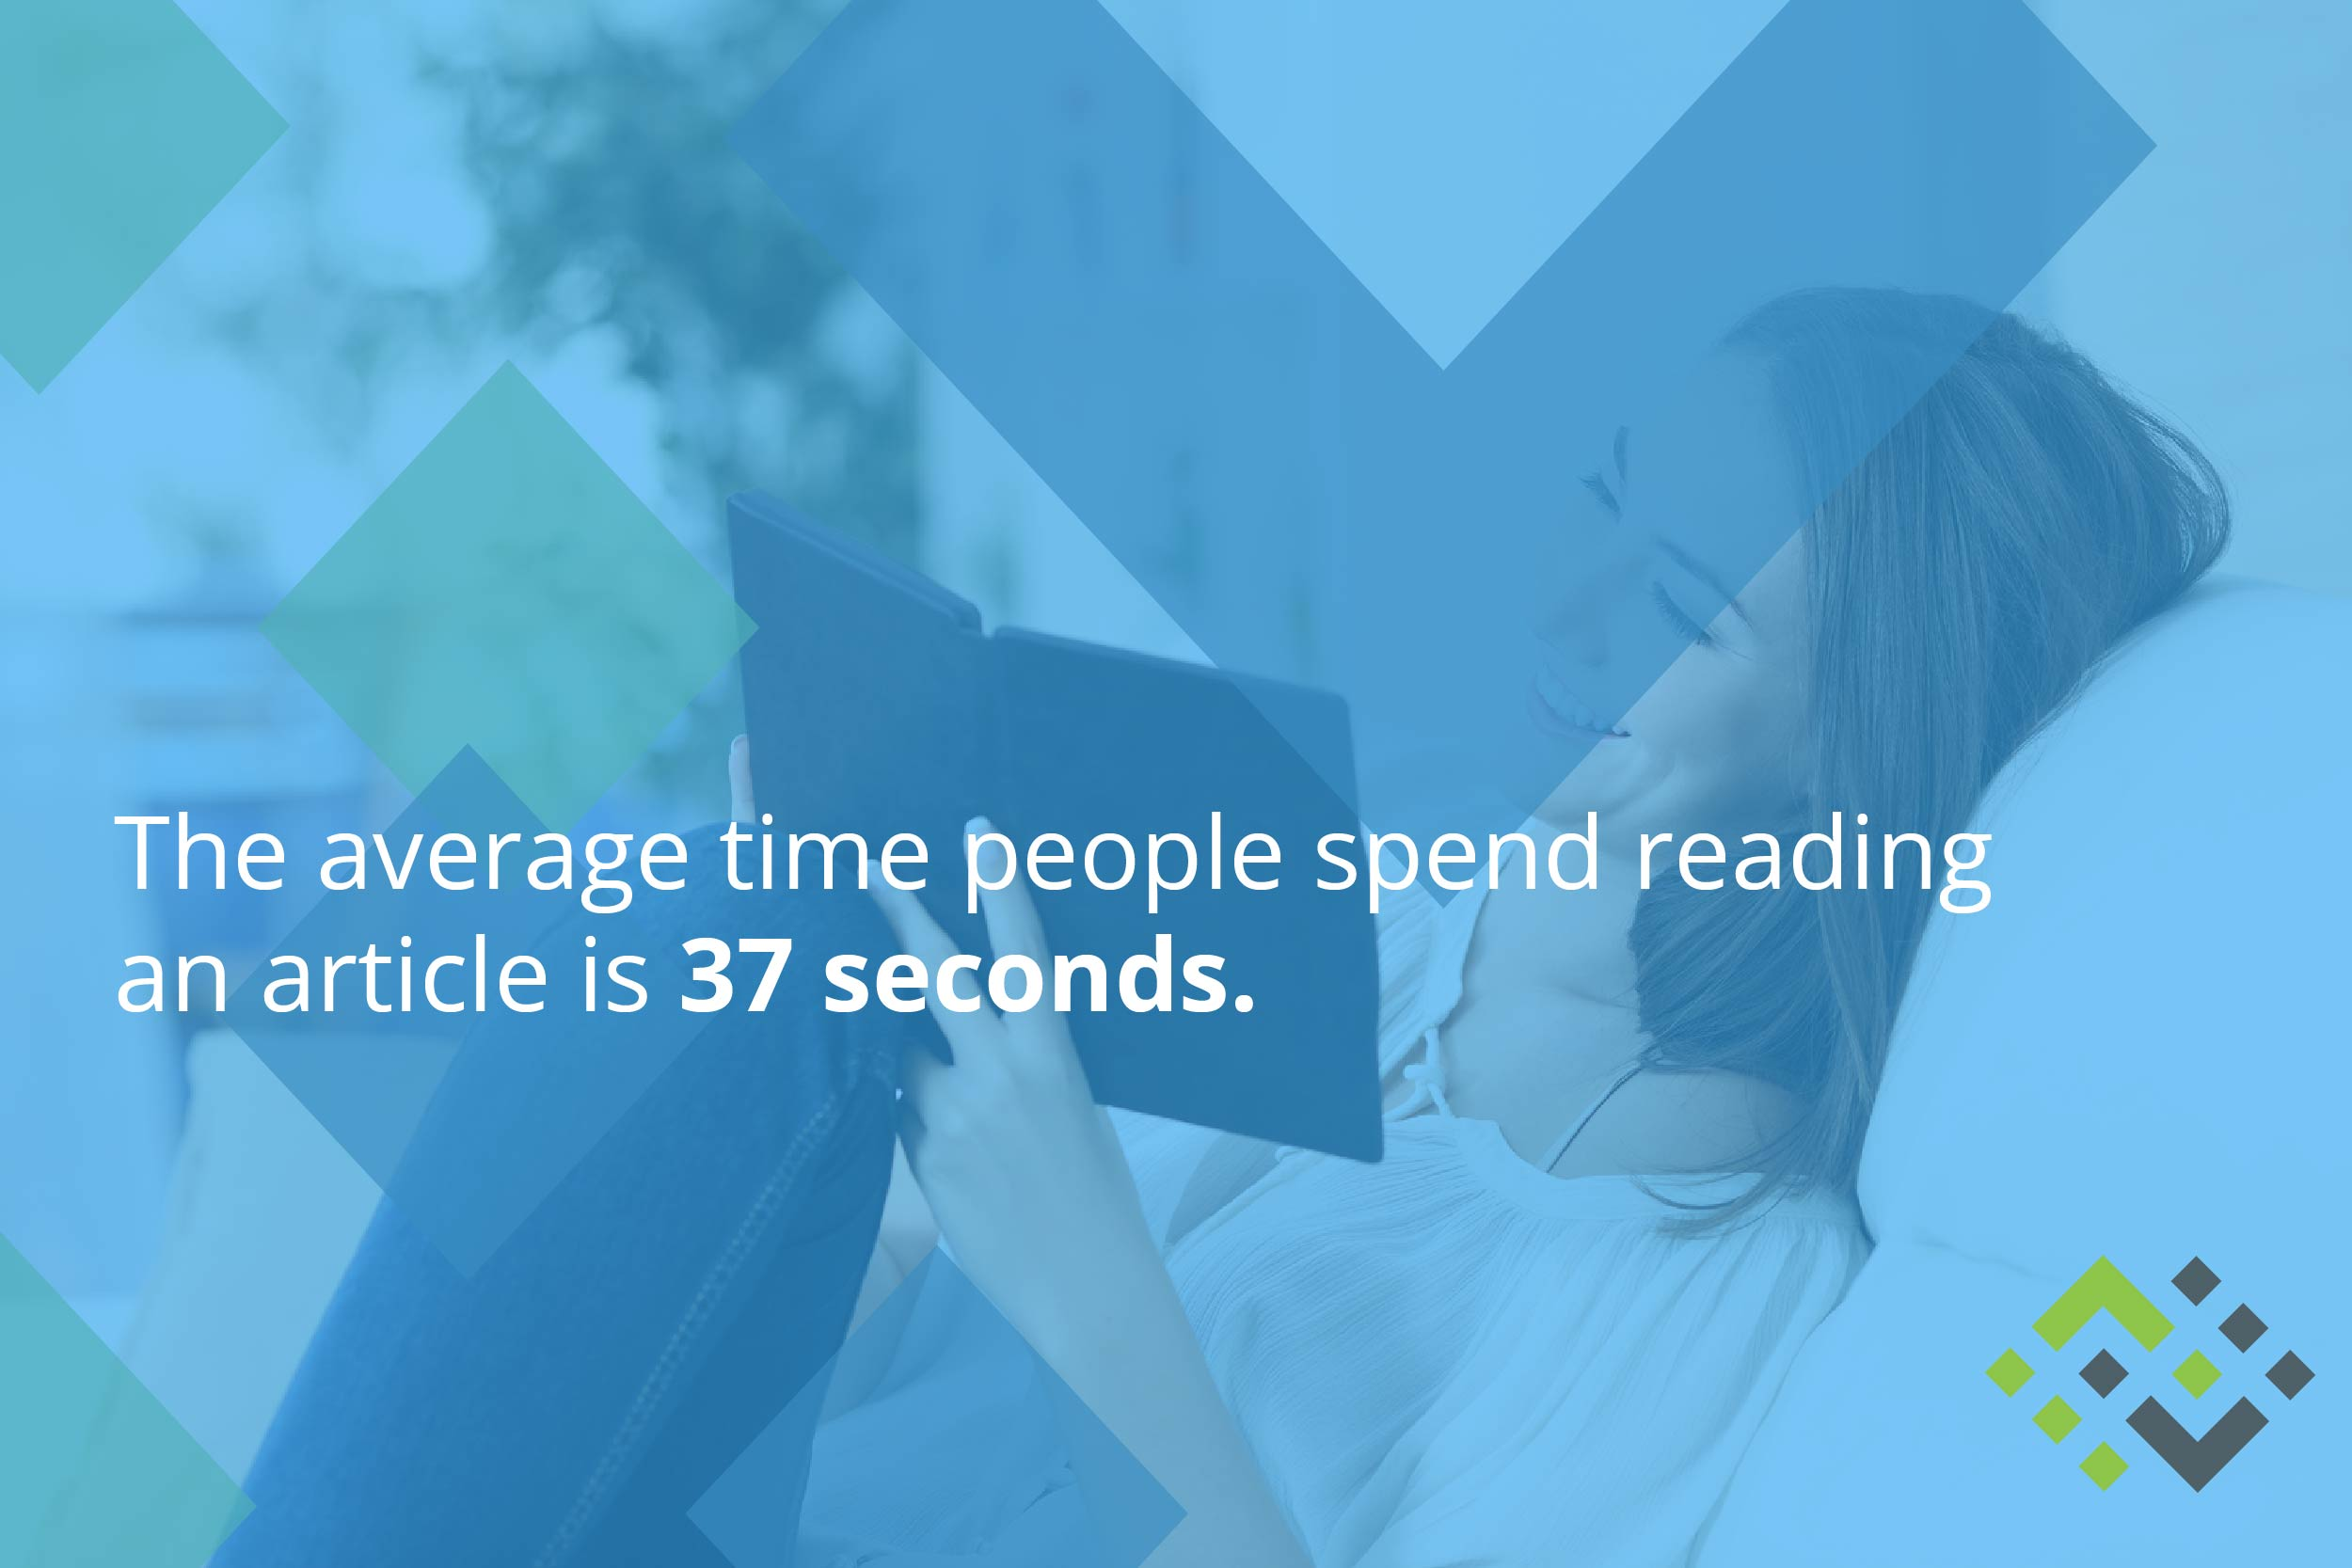 The average time people spend reading an article is 37 seconds